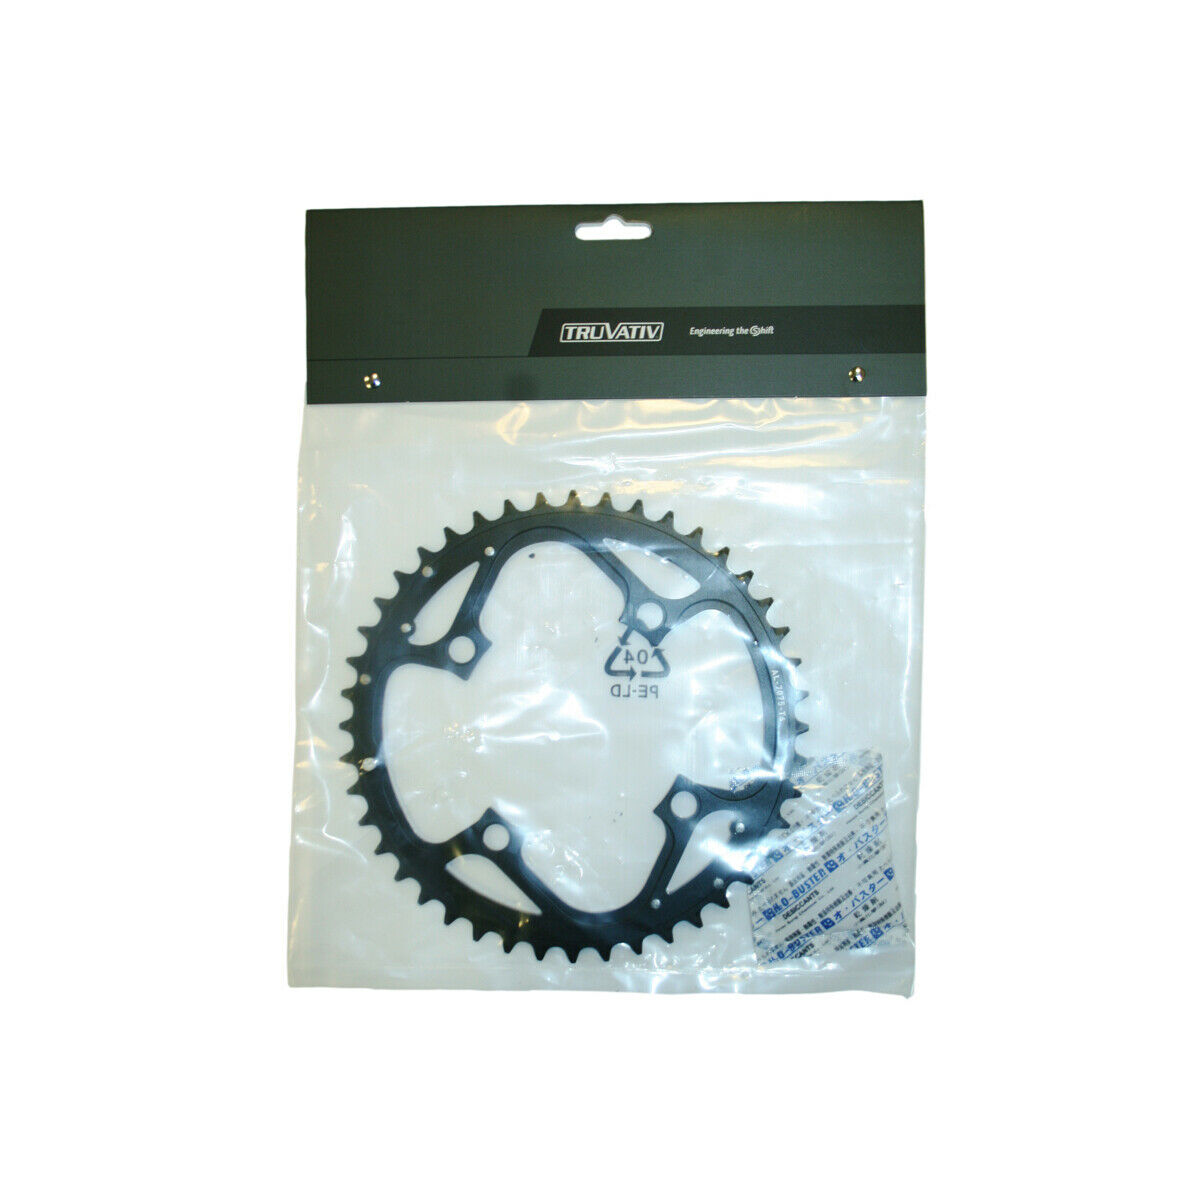 Truvativ BICICLETTA CICLO BICICLETTA CHAIN RING MTB 104 V4 in tuttiuminio 4MM Rigido Nero 44T